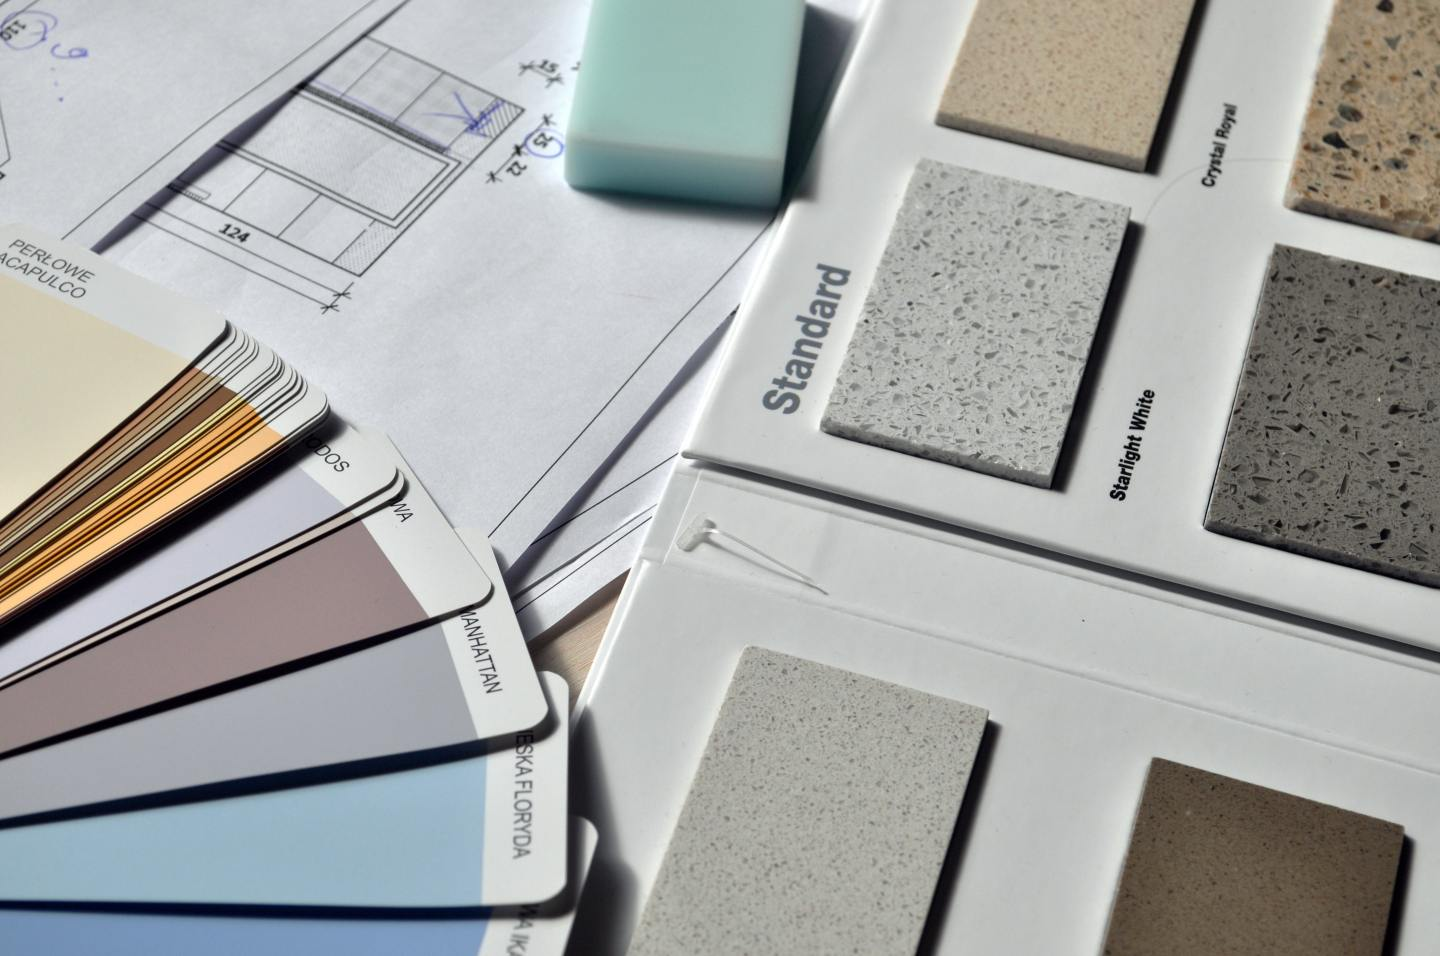 Overhauling Your Home And Don't Know Where To Start? 3 Tips For Renovation